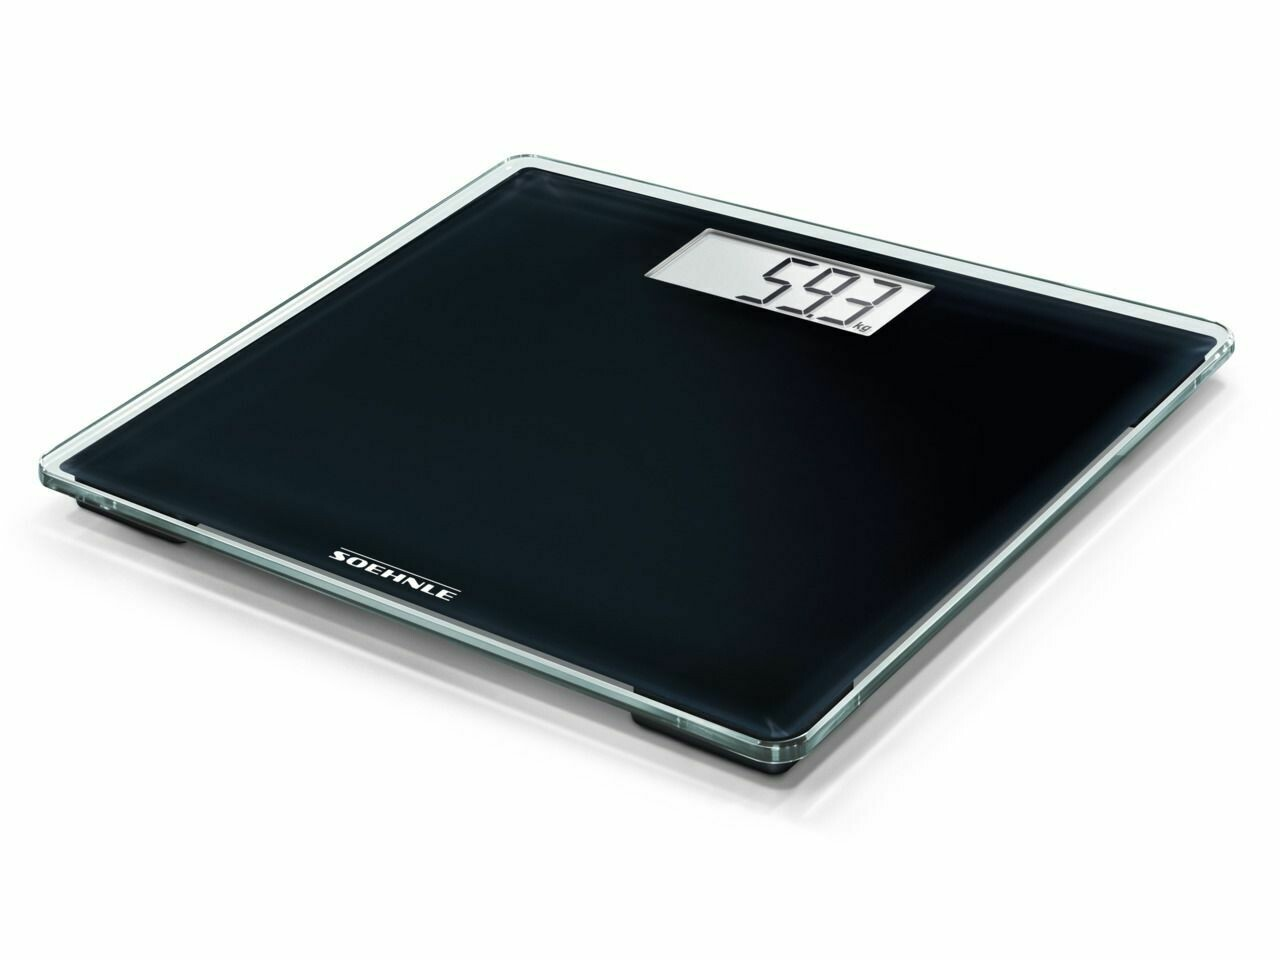 Soehnle Style Sense Compact 100 Digital Bathroom Scale 63850